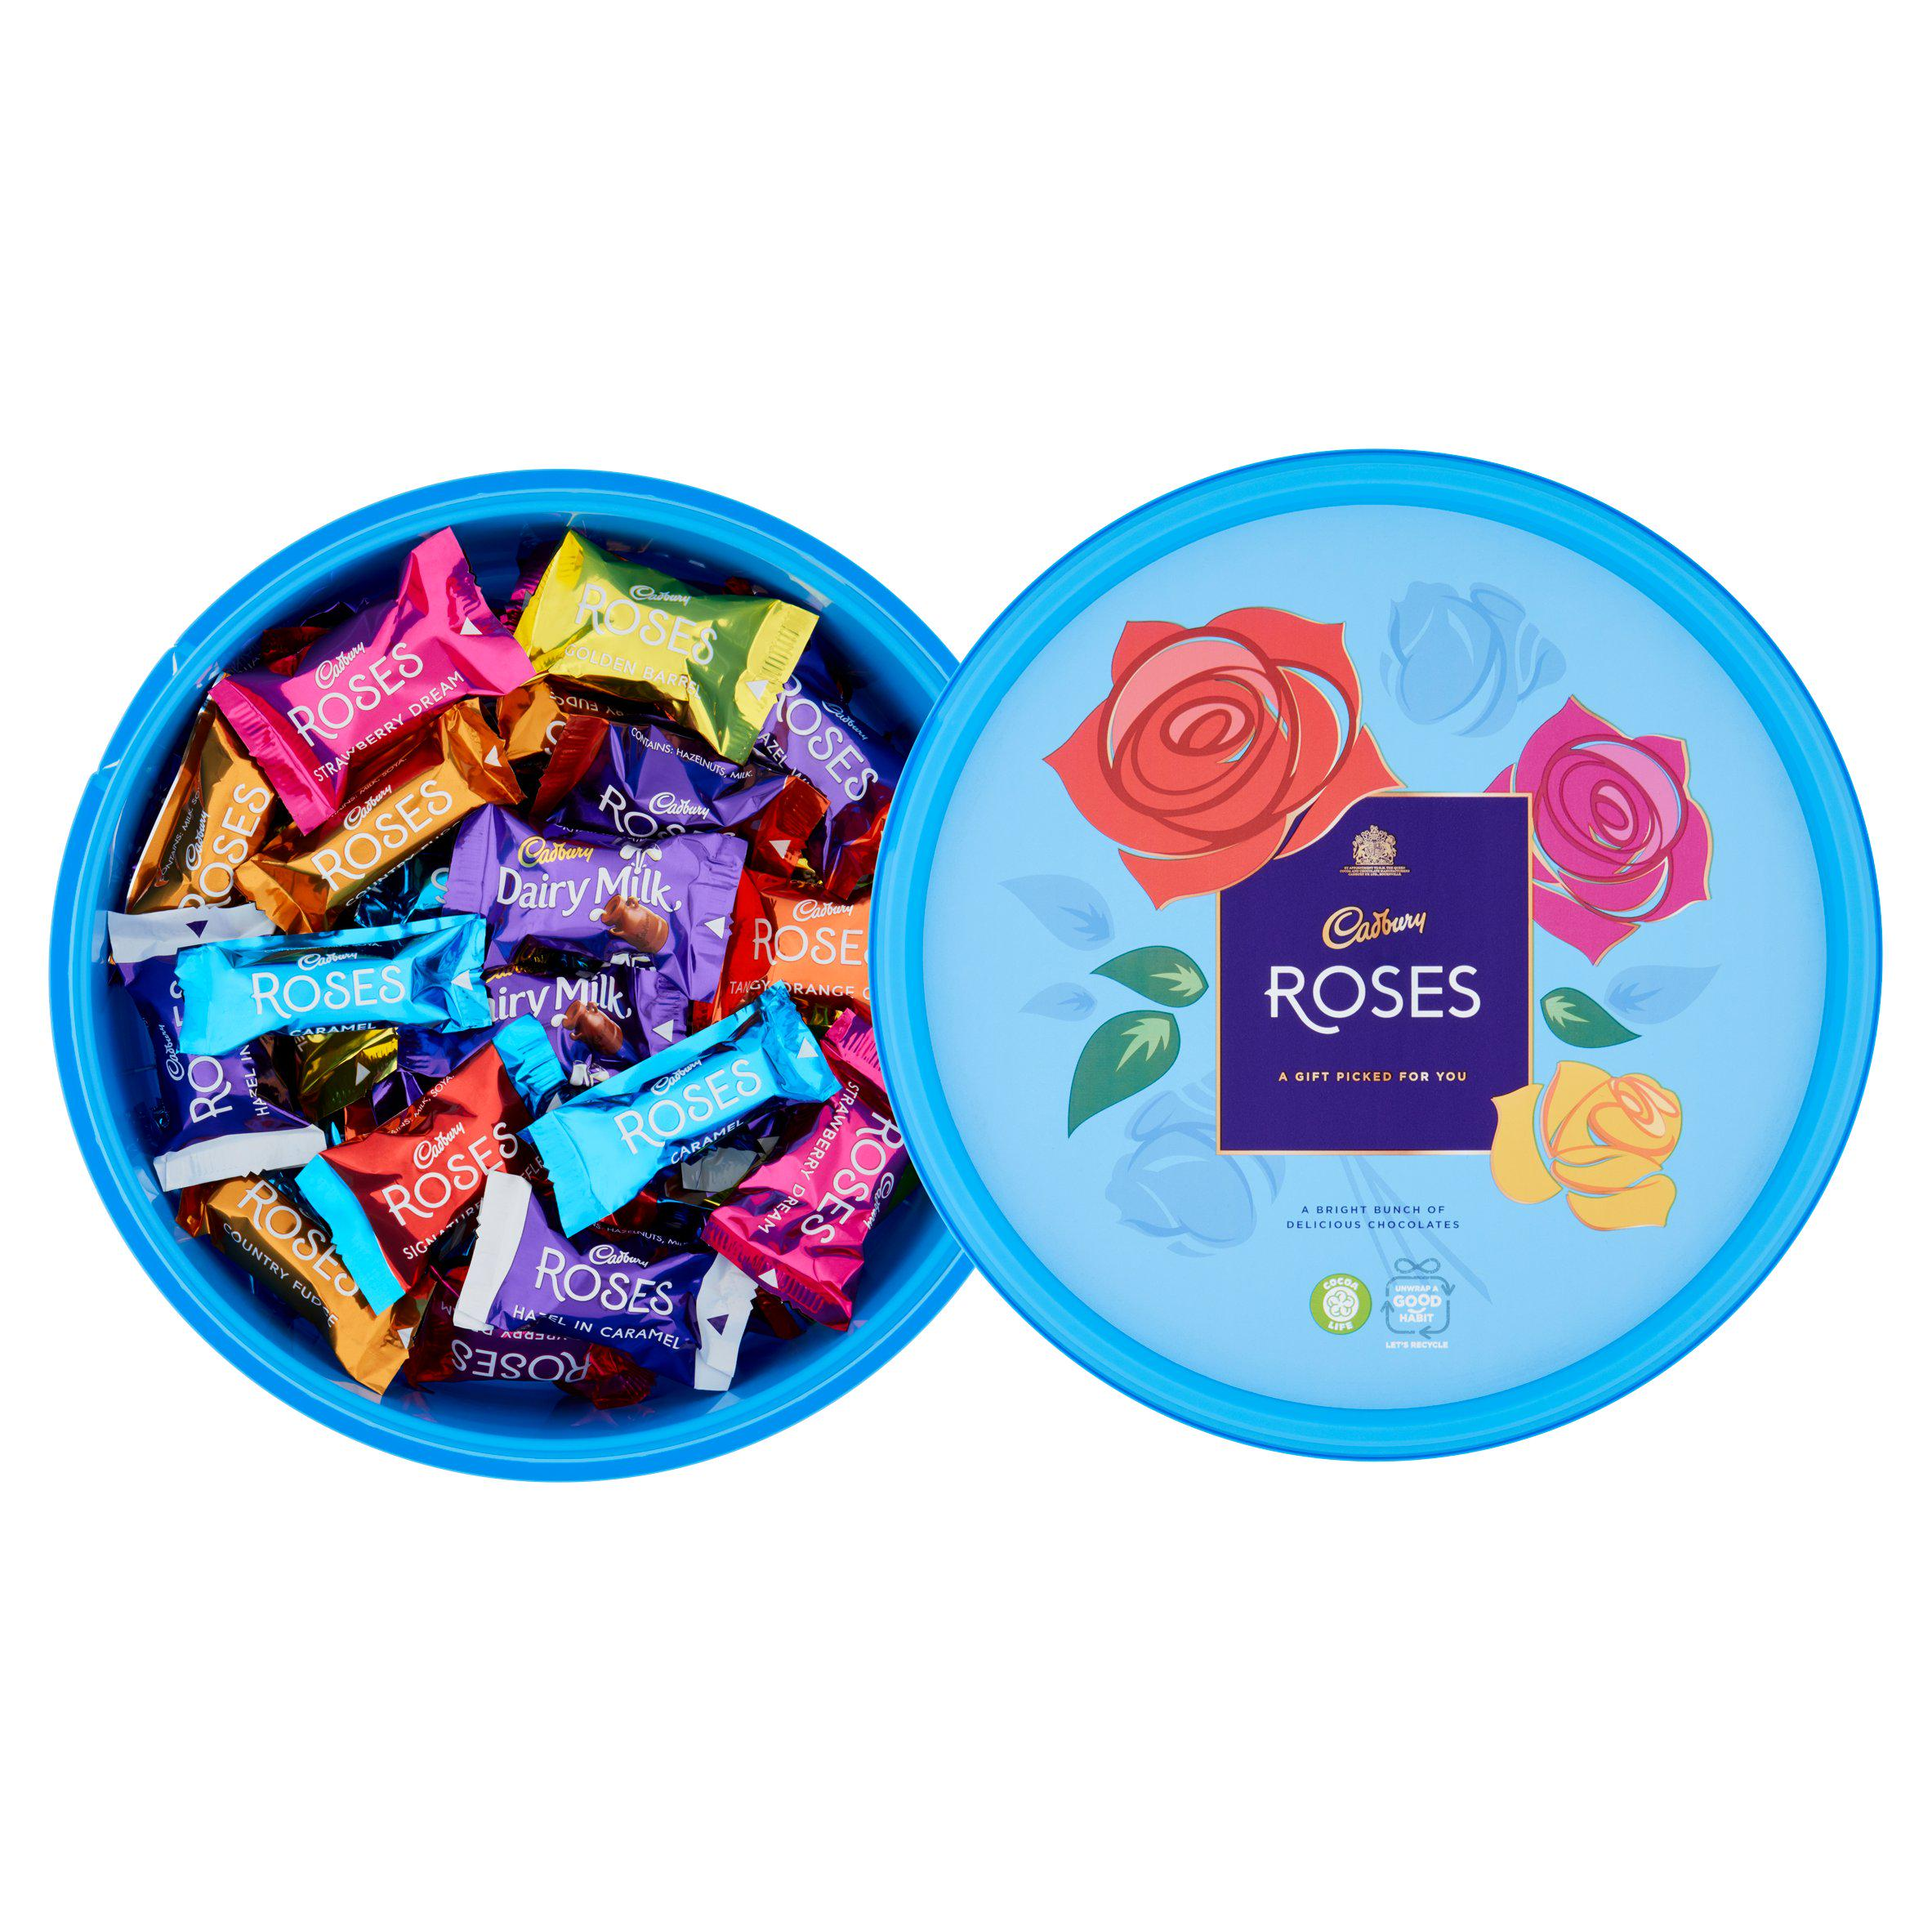 Everyone loves a tub of Roses at Christmas, but you could save £1.50 by switching to Sainsbury's Chocolate Treats